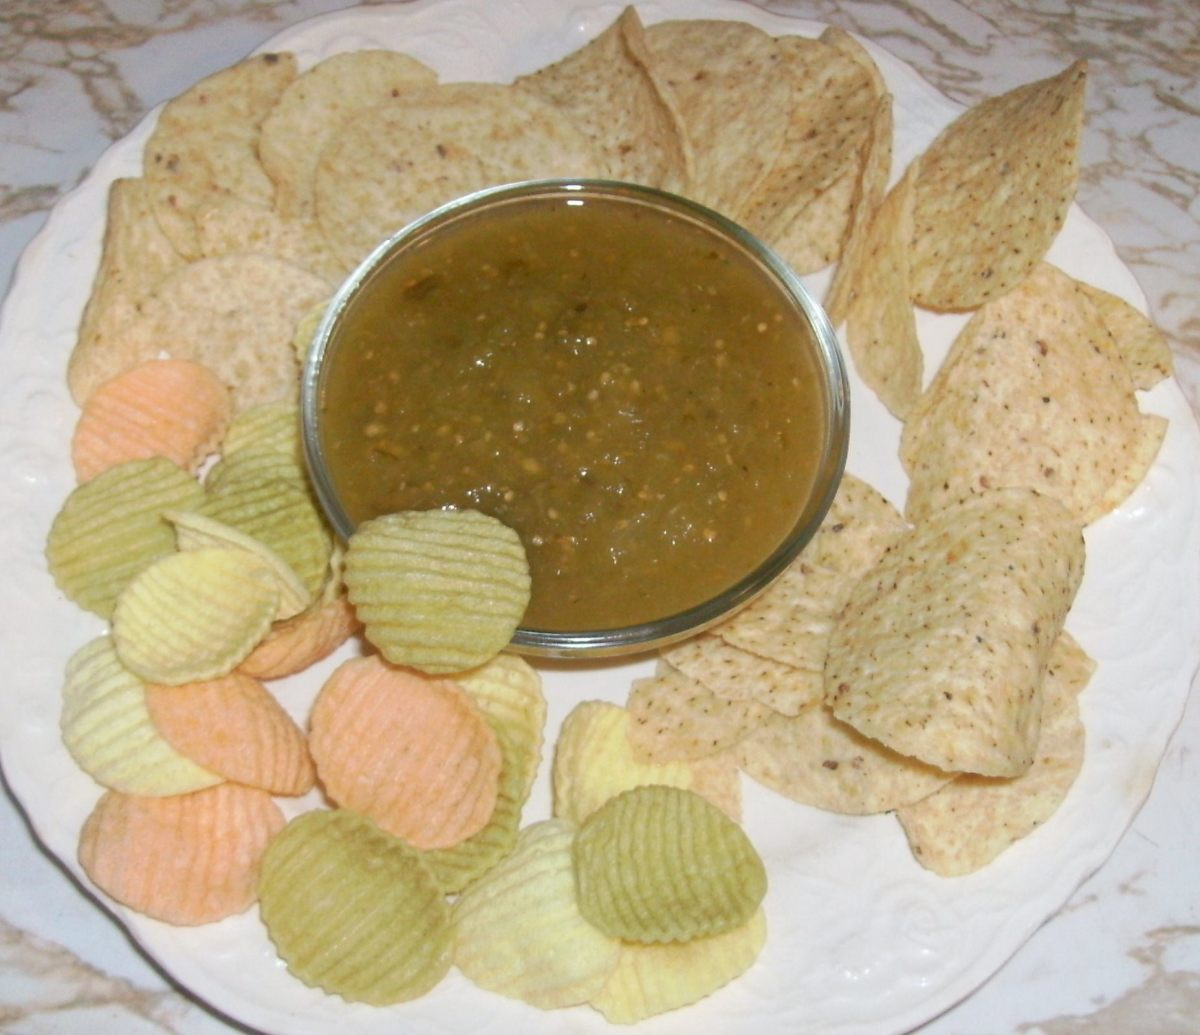 Dip into some green with chips and salsa.